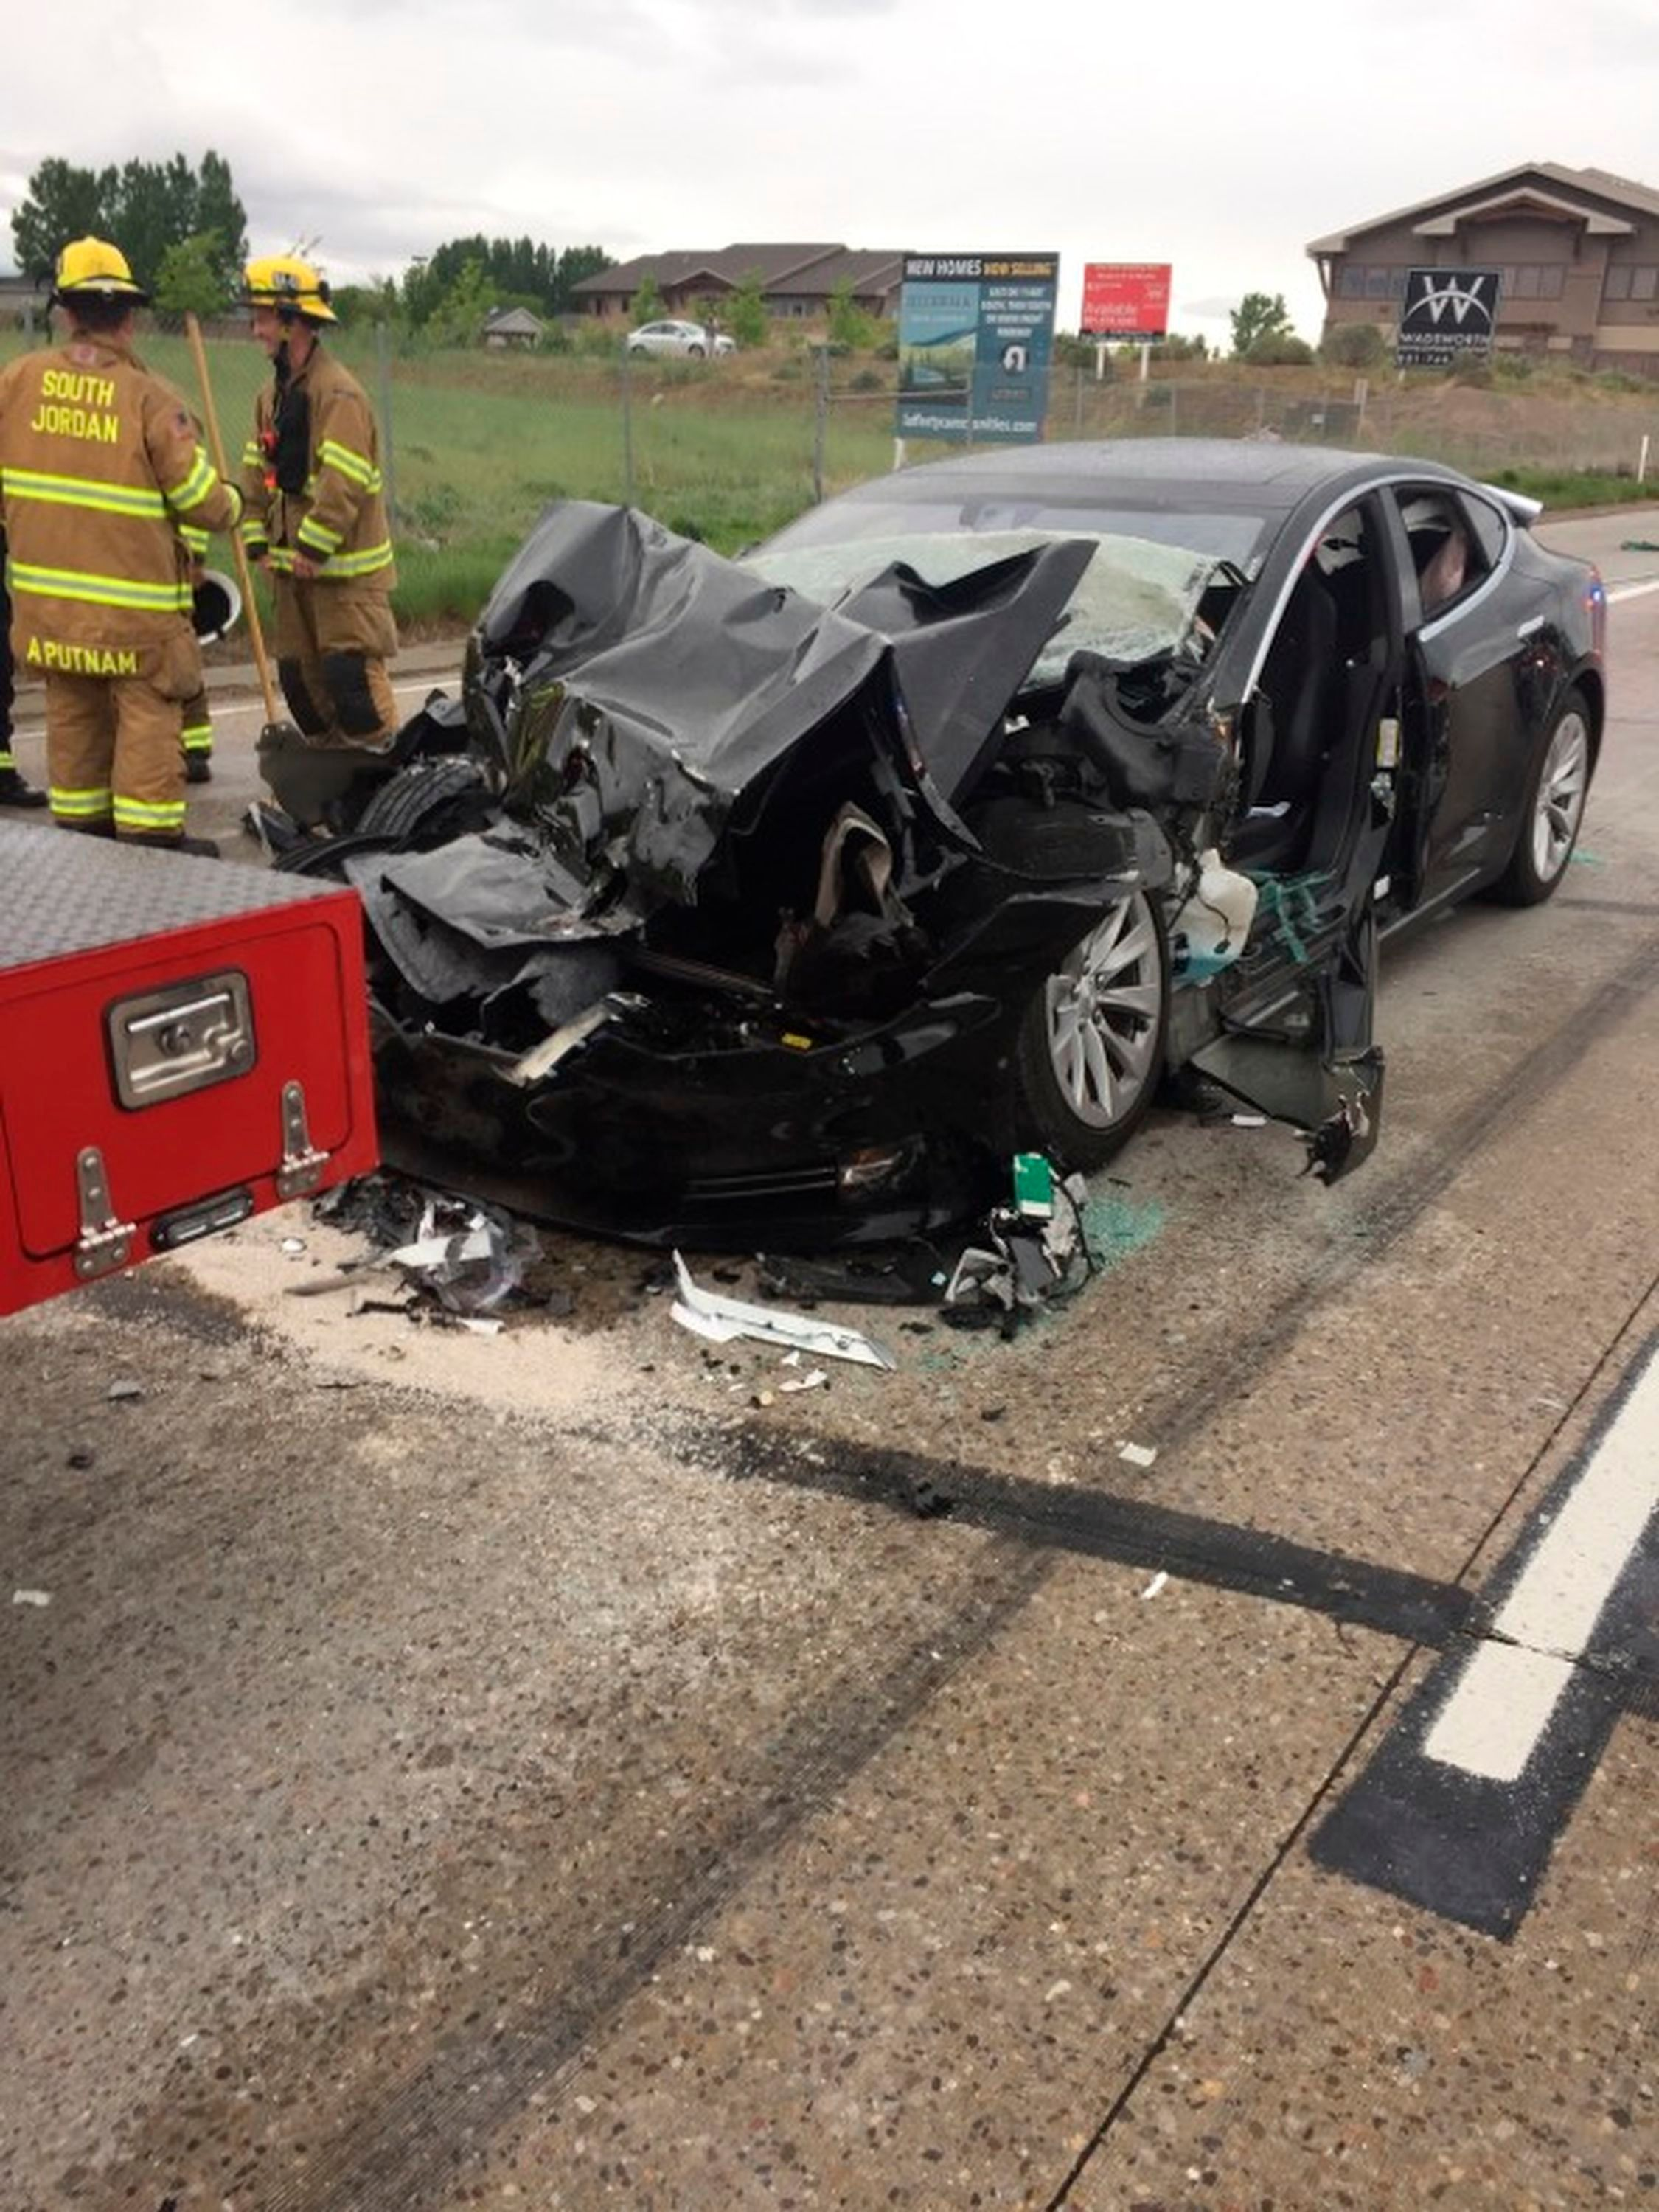 Police: Tesla in Autopilot mode sped up before crashing into truch